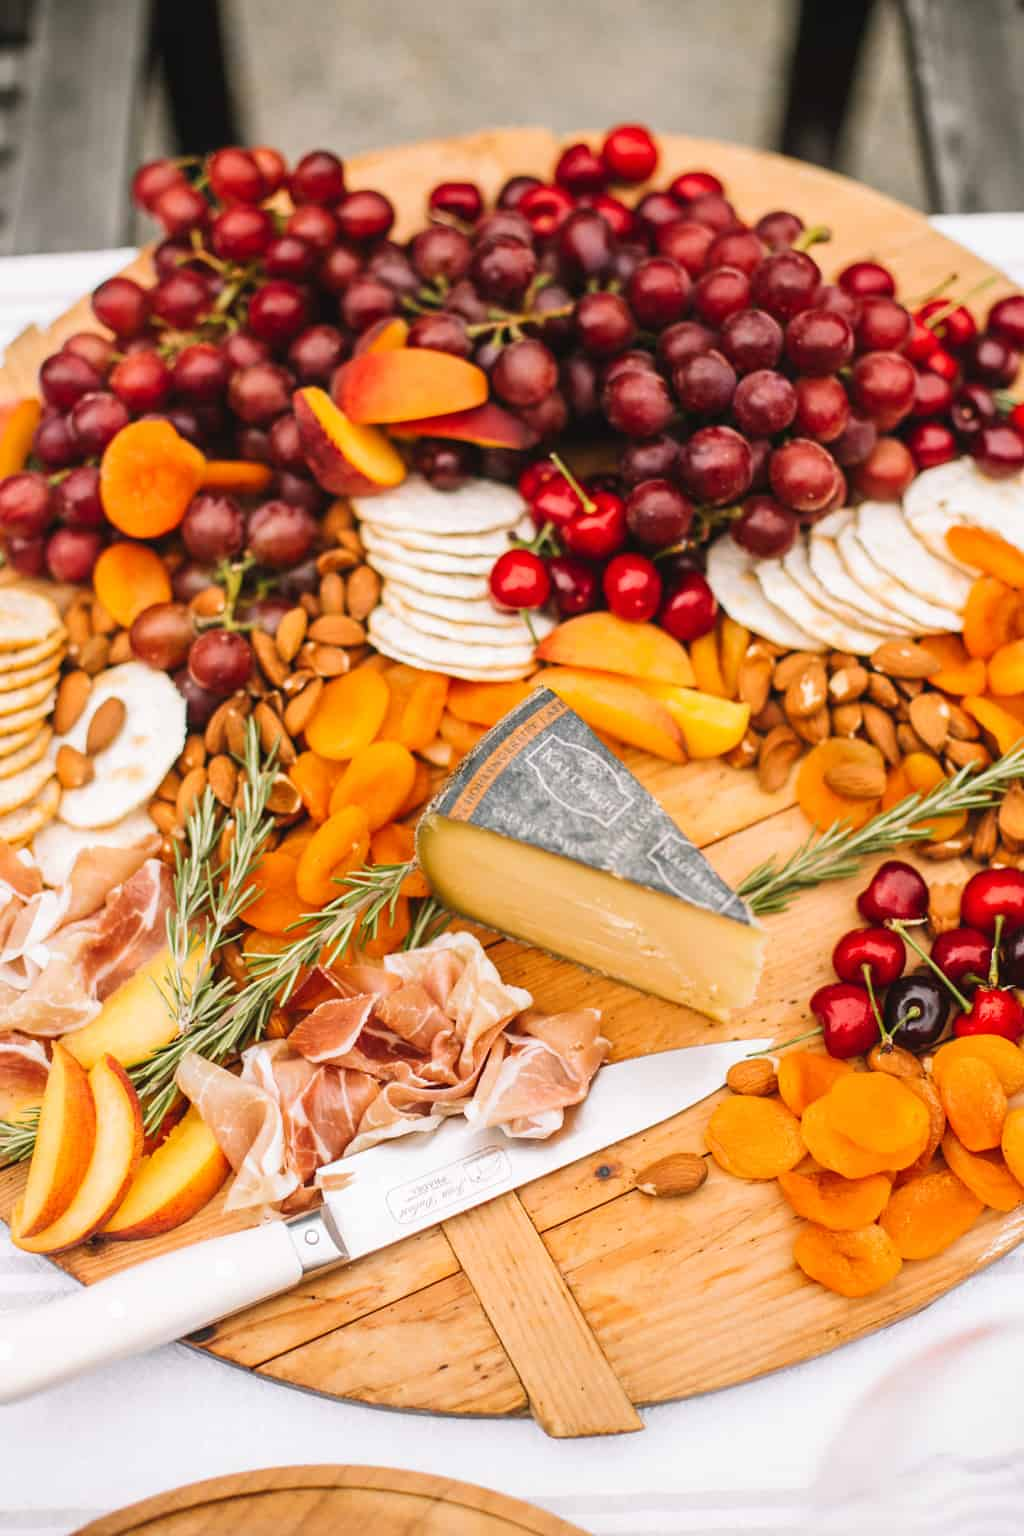 Wooden cheeseboard filled with dried apricots, cherries, grapes, crackers and a wedge of swiss cheese.